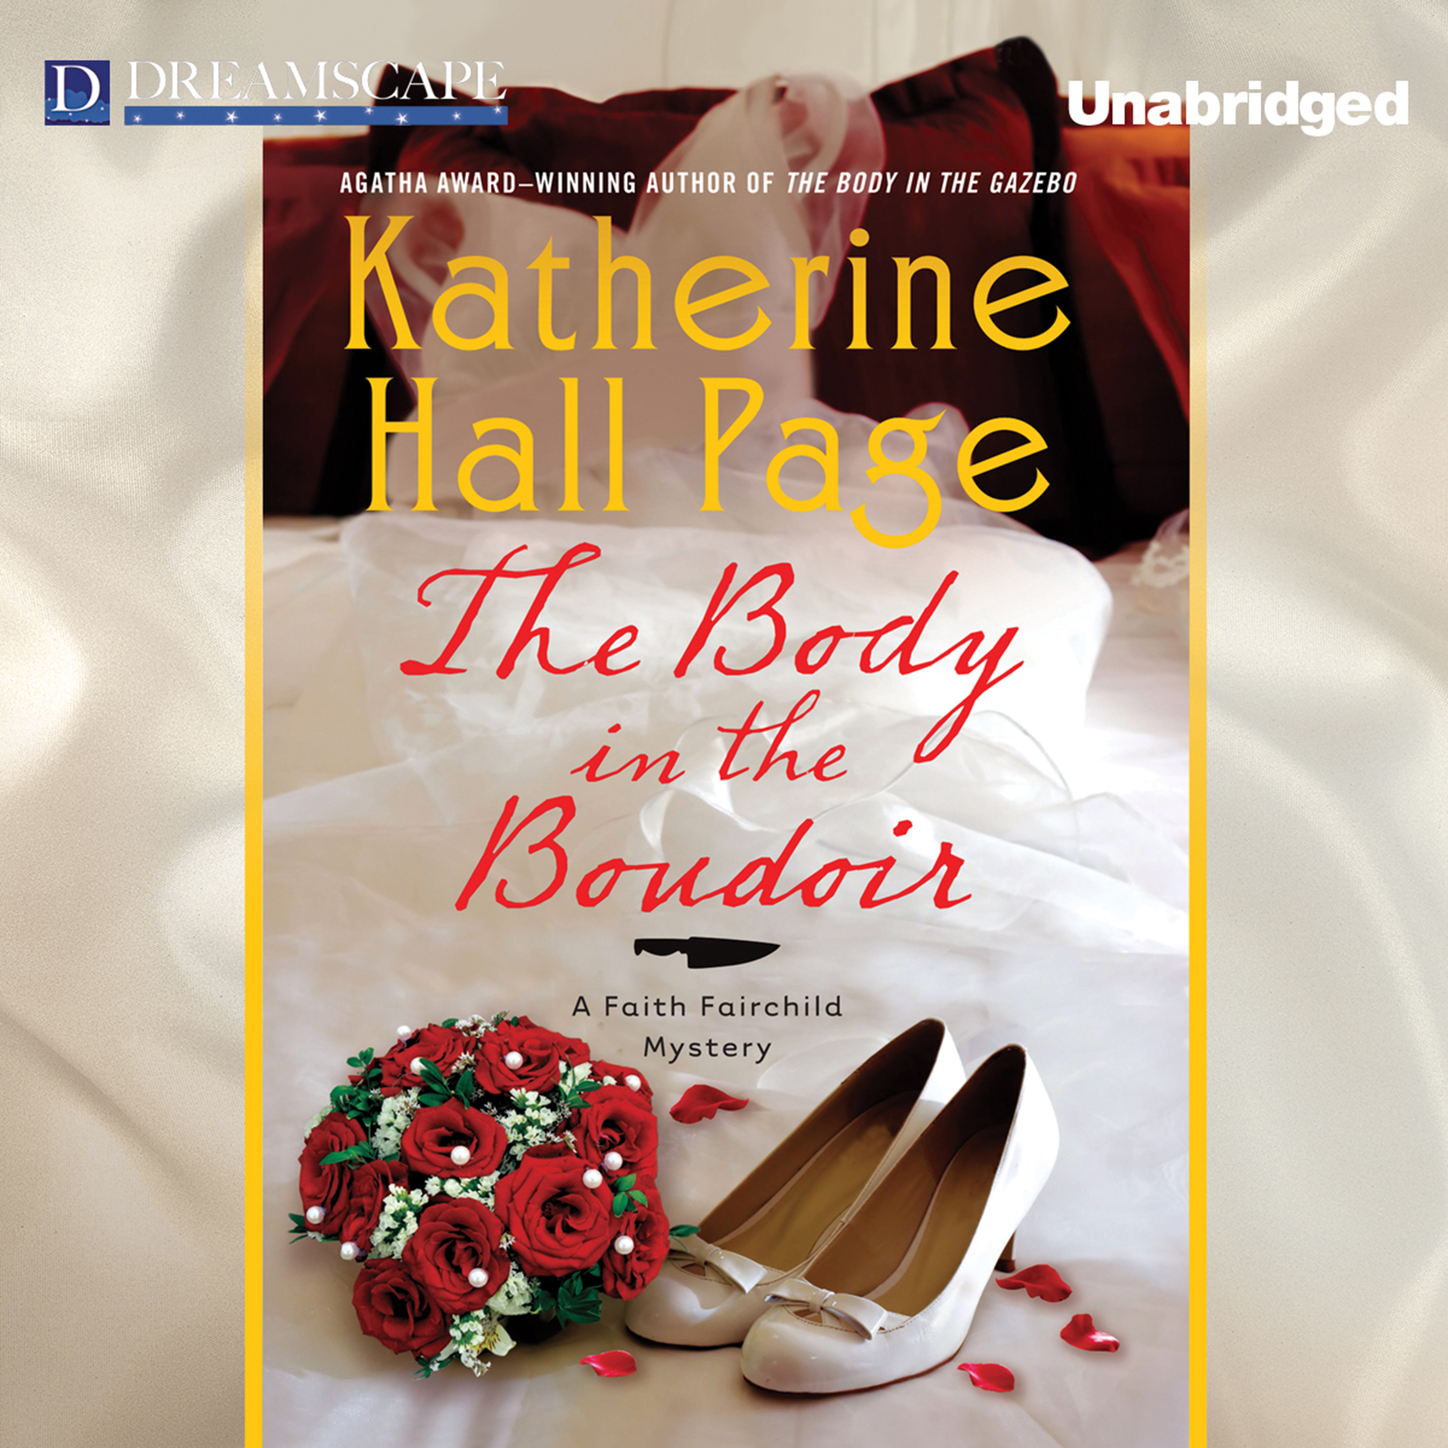 Katherine Hall Page Body in the Boudoir - A Faith Fairchild Mystery, Book 20 (Unabridged) page 14